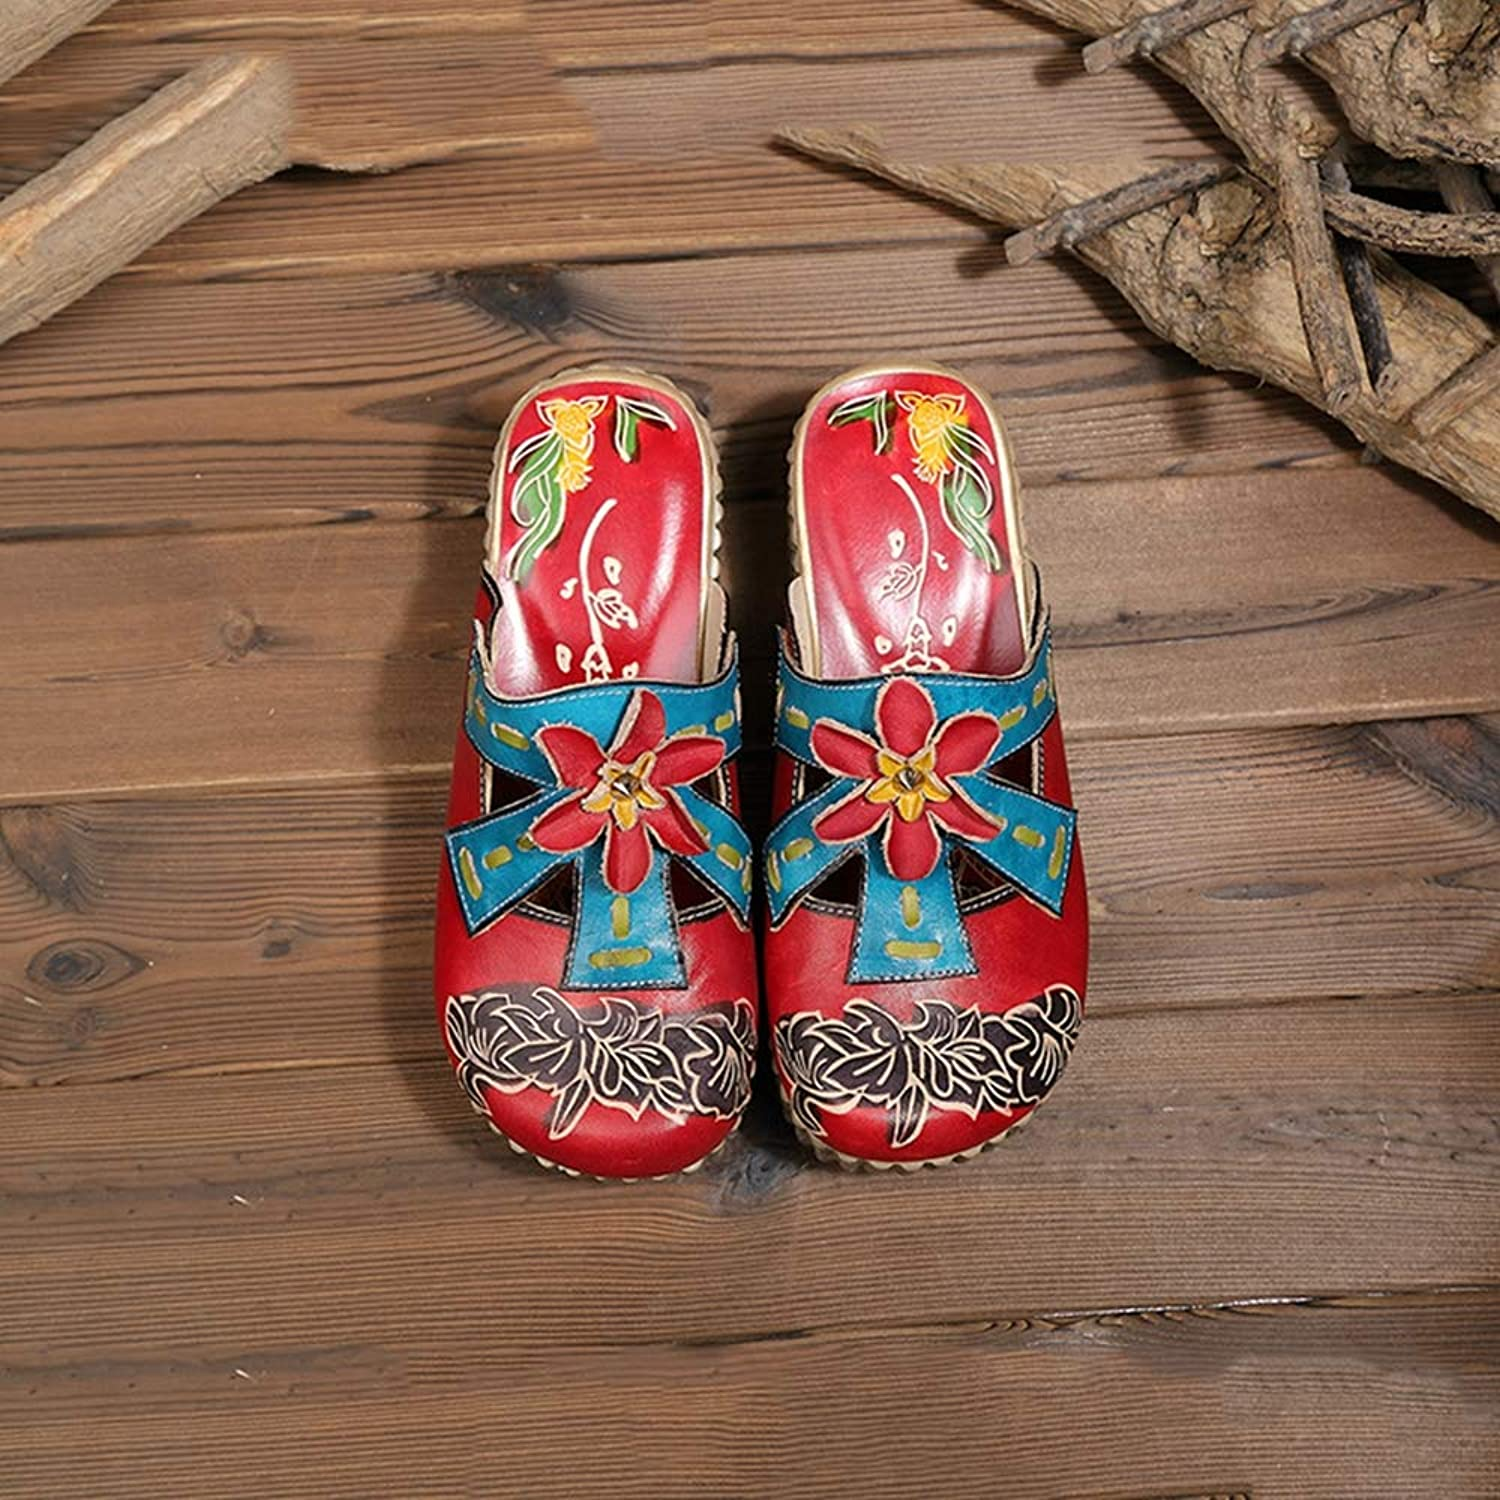 Leather Slipper,Women's colorful Backless Slippers Flowers Leather Vintage Boho Platform Flat Sandals,7.5MUS